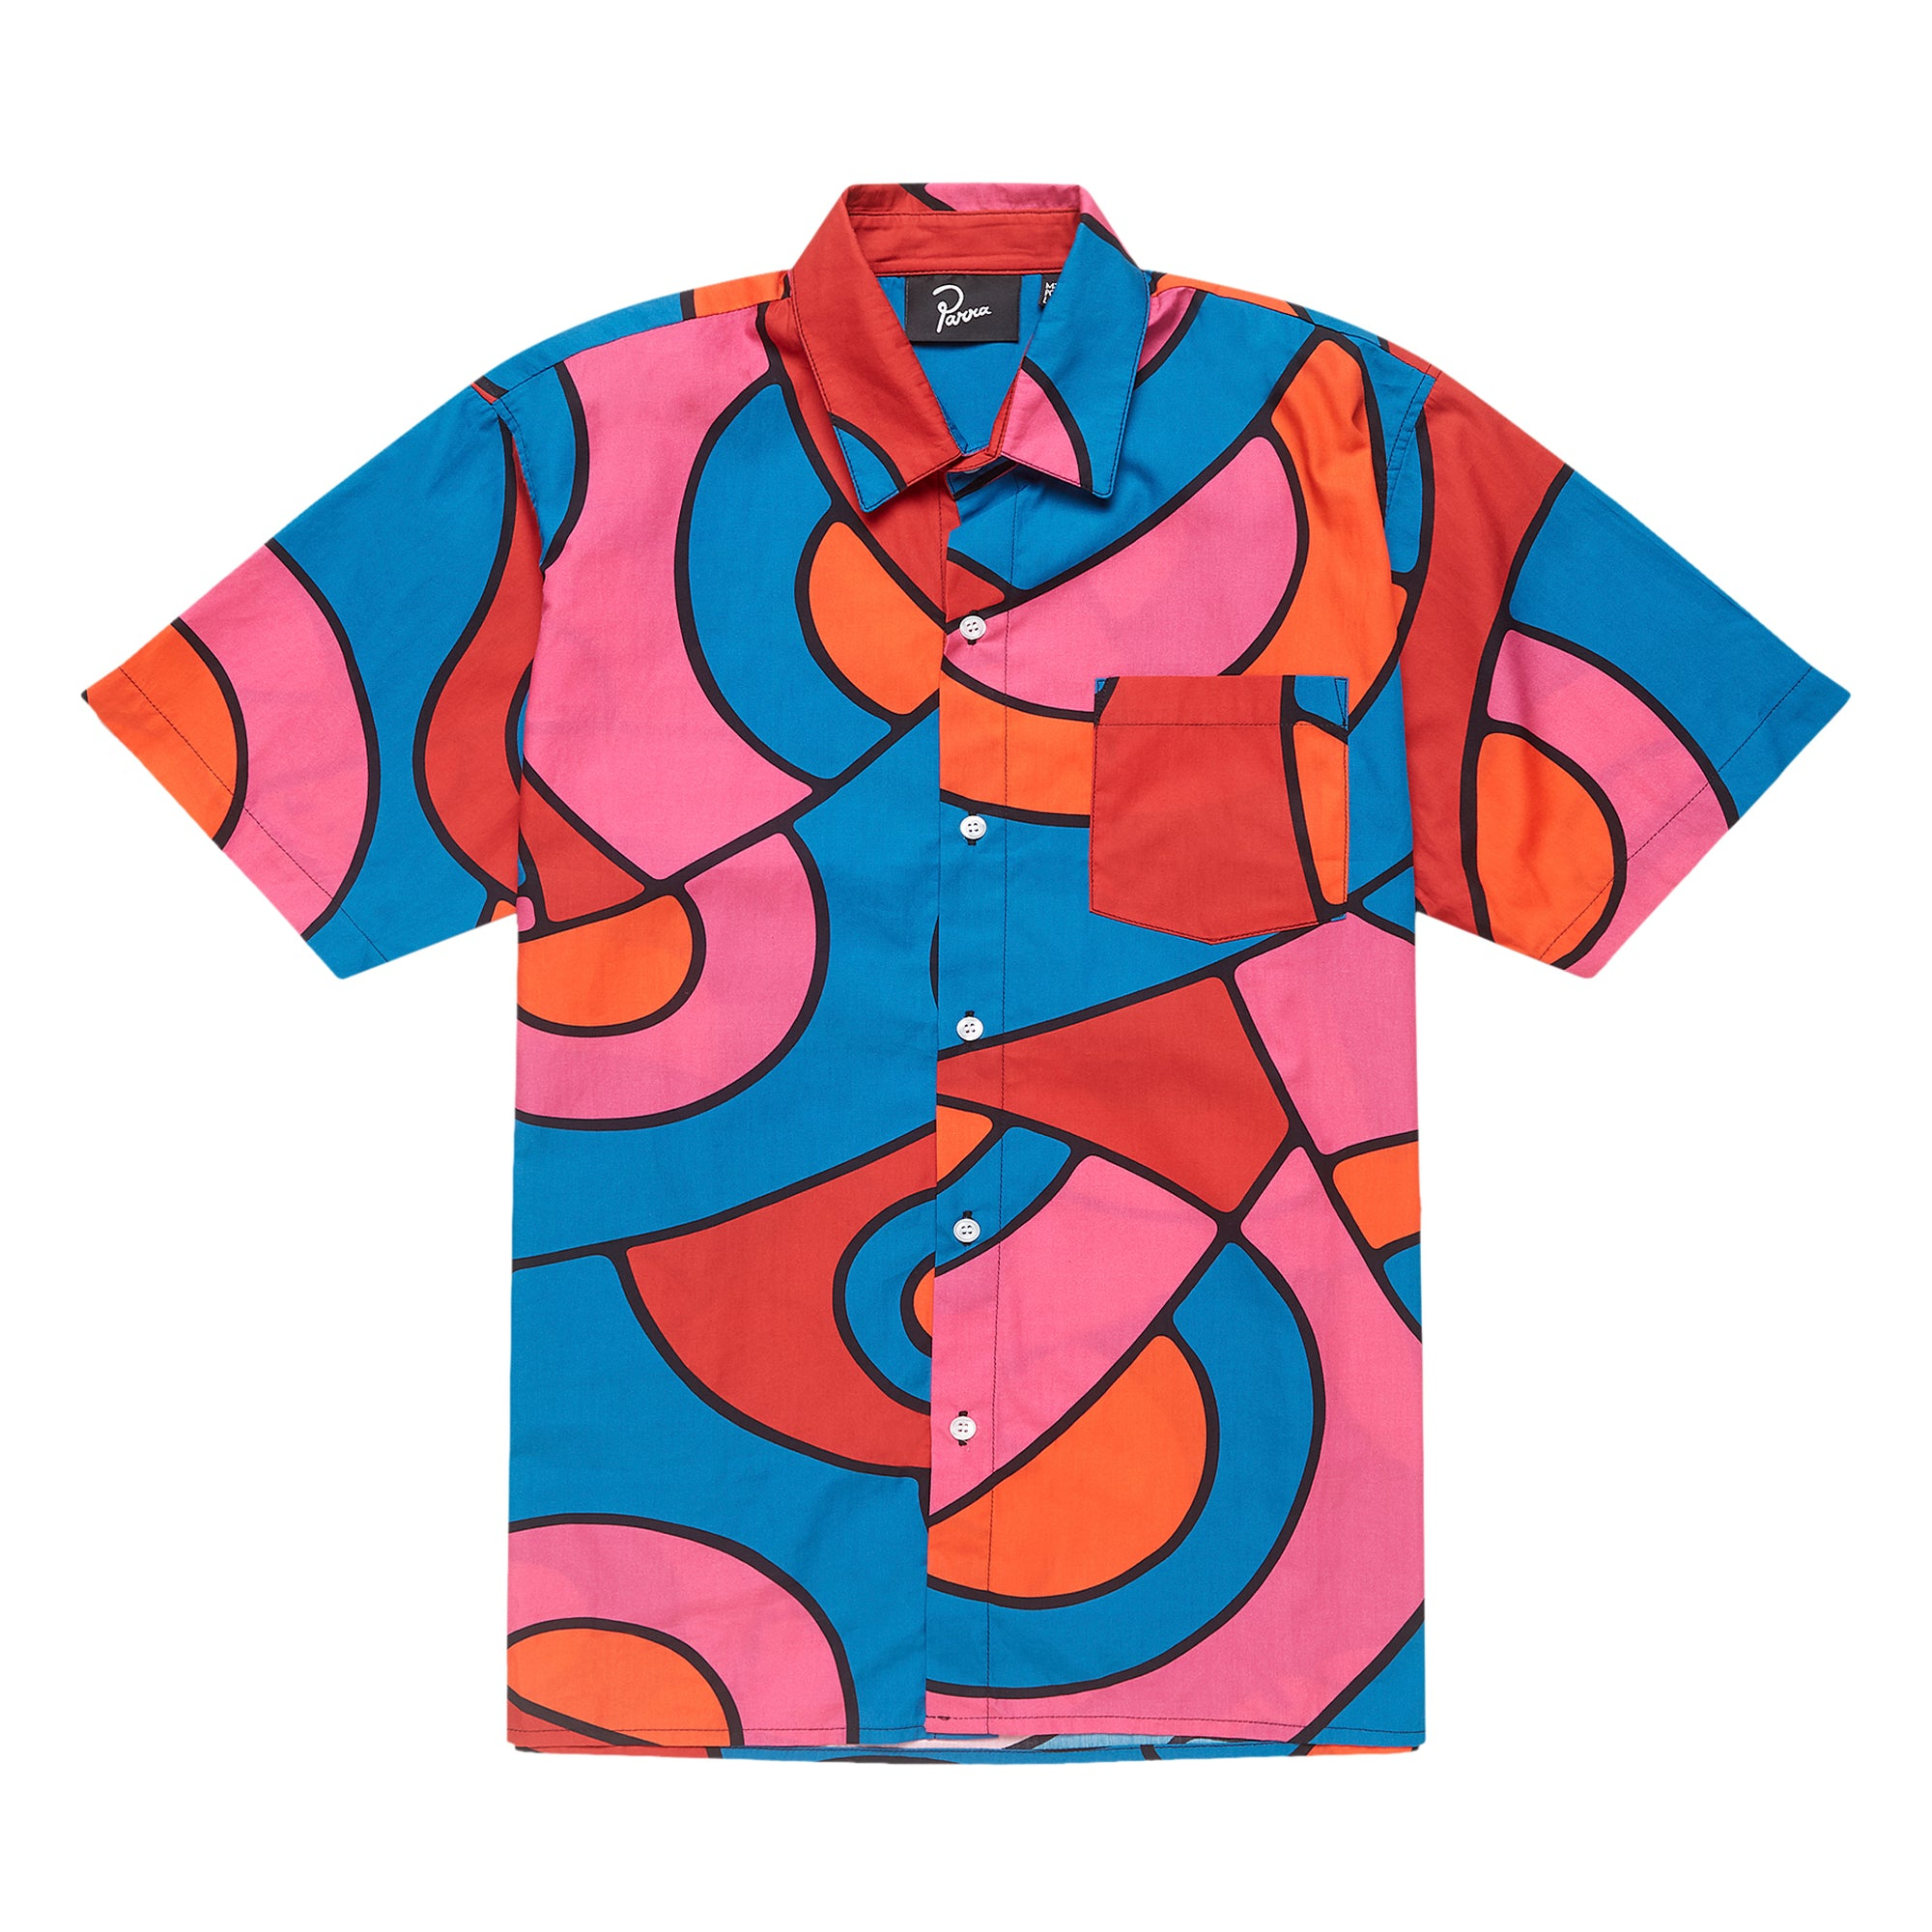 Parra Serpent Pattern Shirt: Multicolor - The Union Project